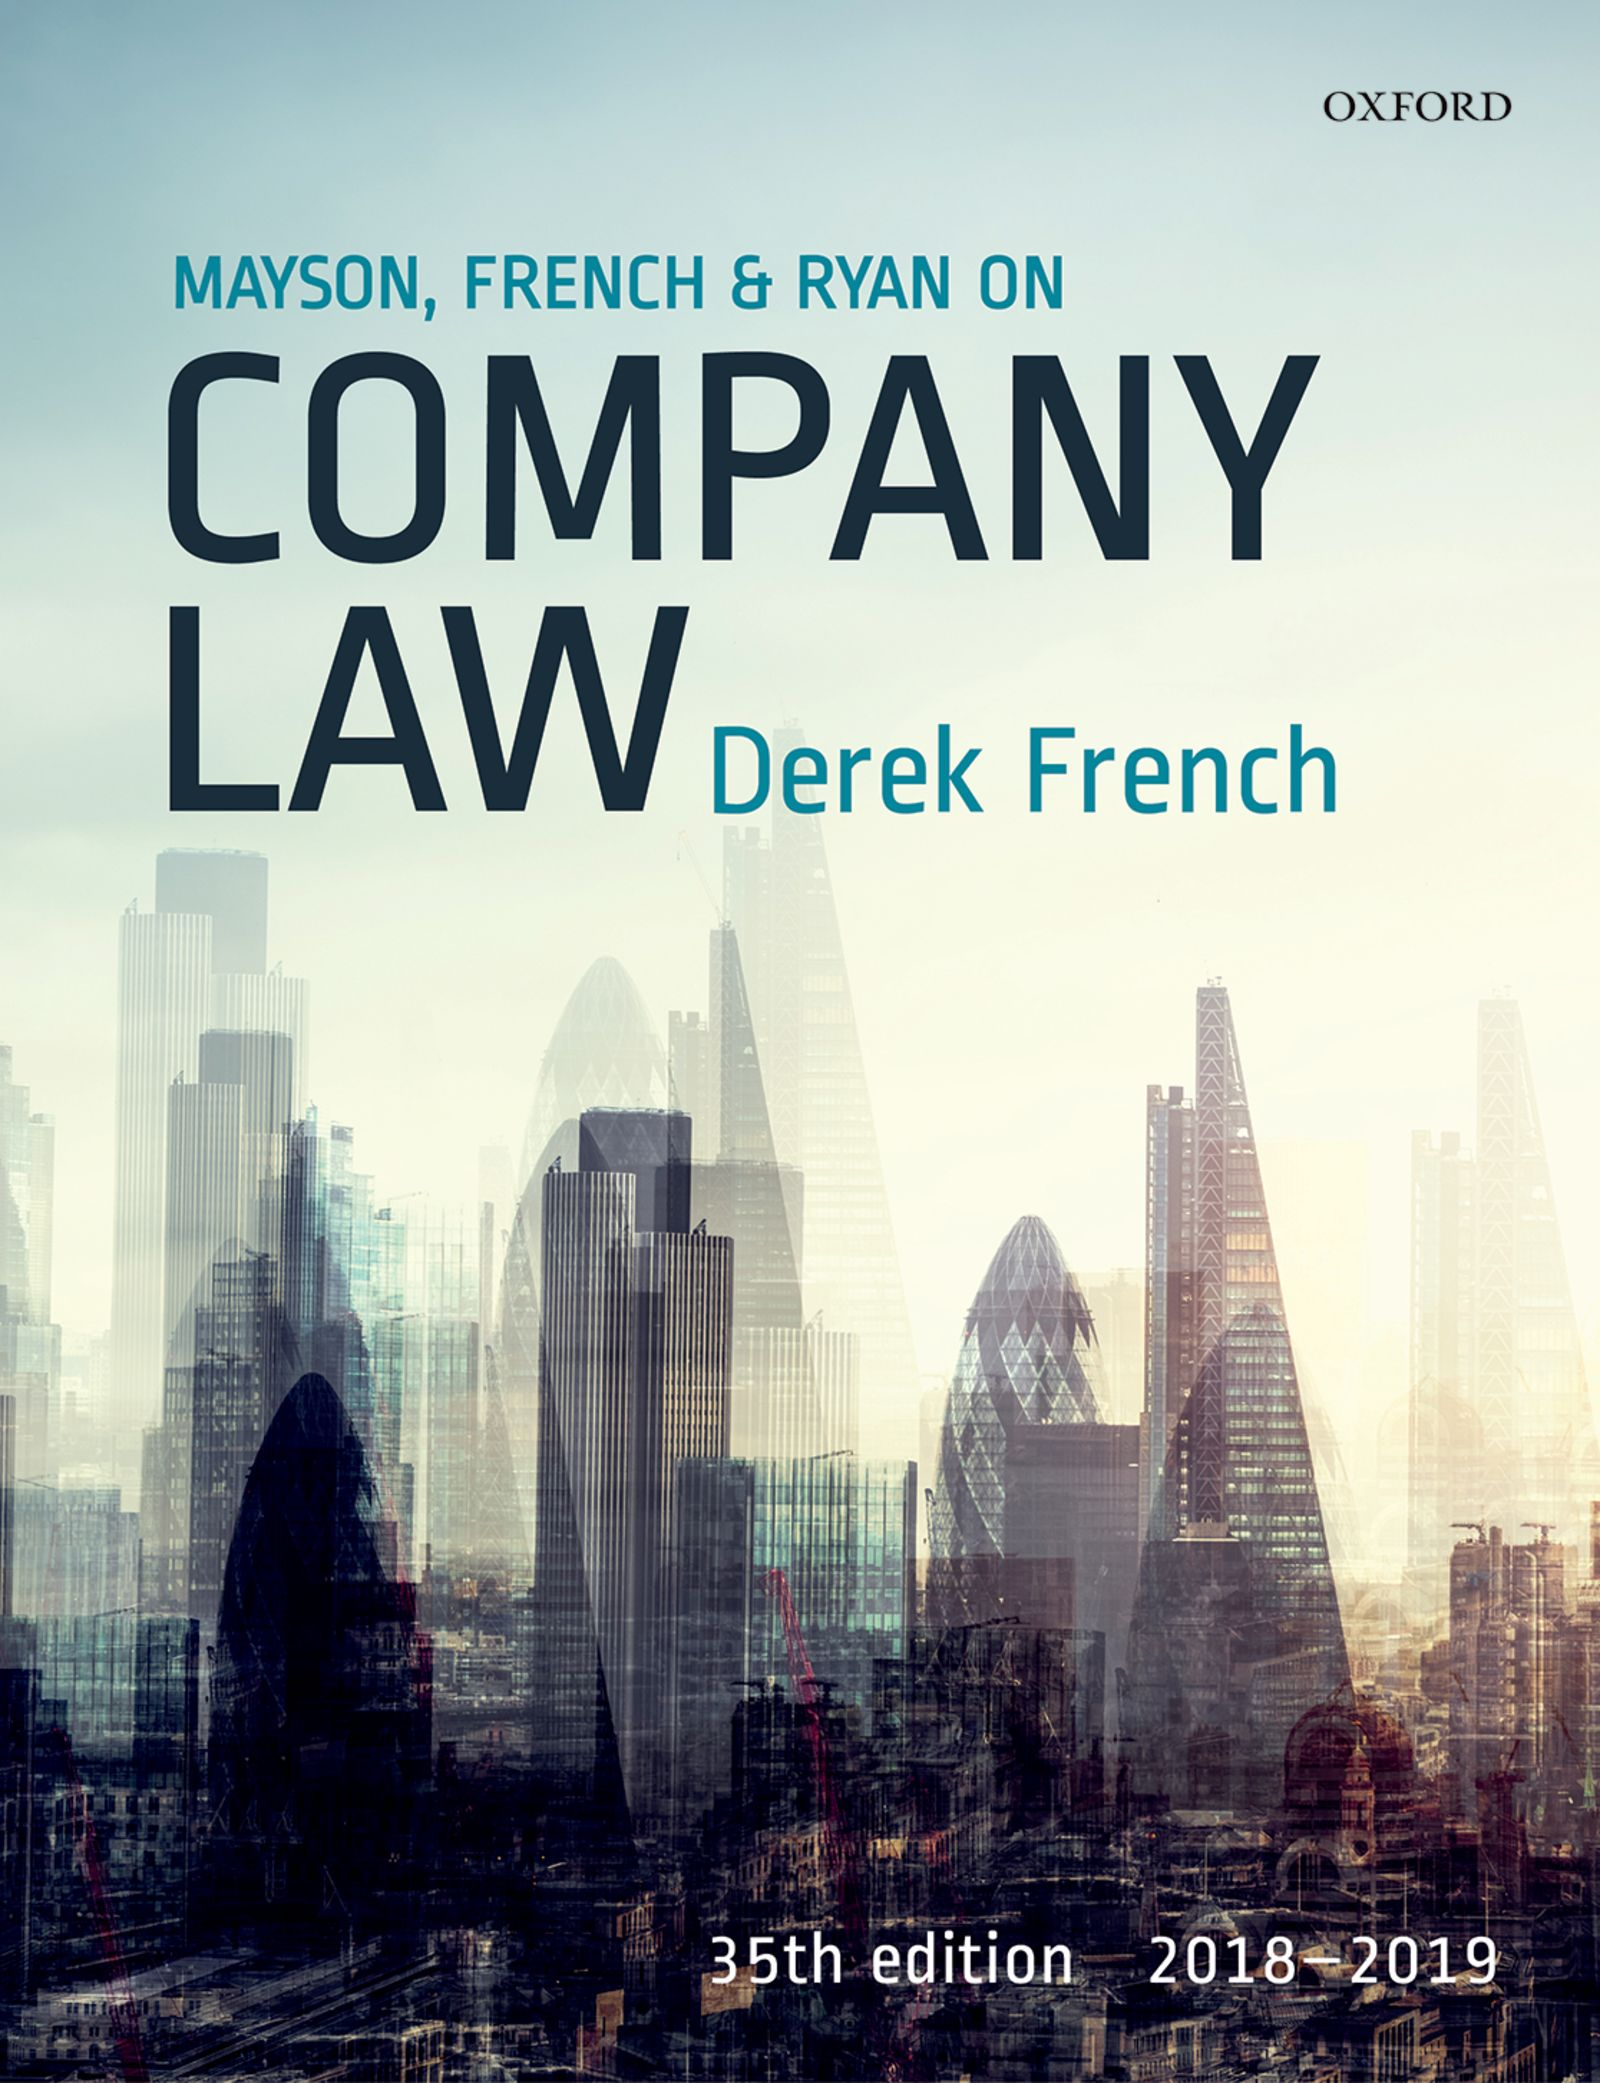 Mayson, French & Ryan on Company Law 2018-2019 Resources